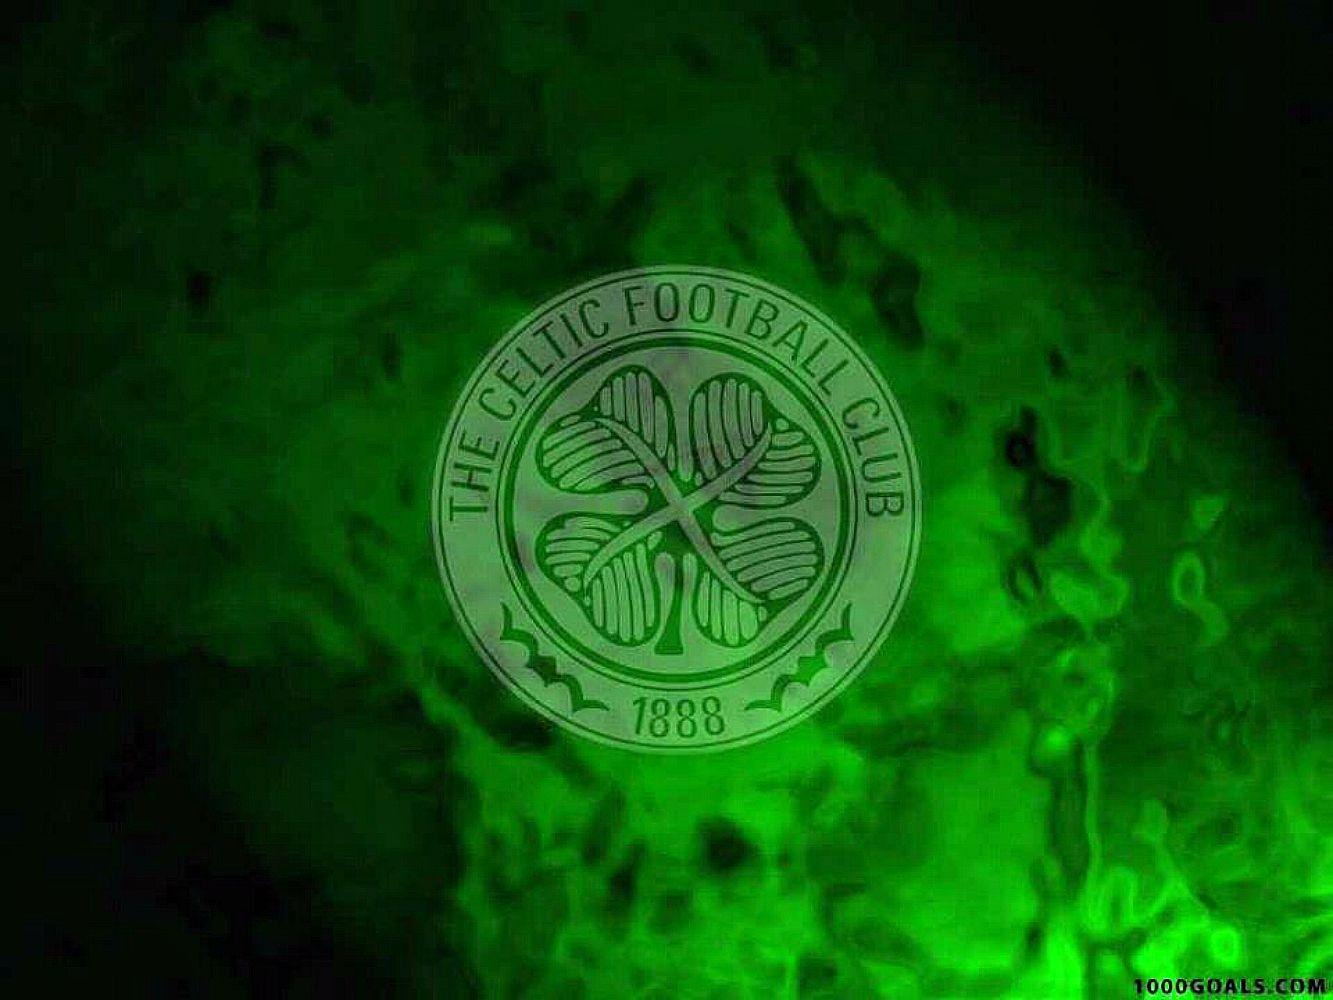 Beautiful Celtic Fc Wallpapers iPhone